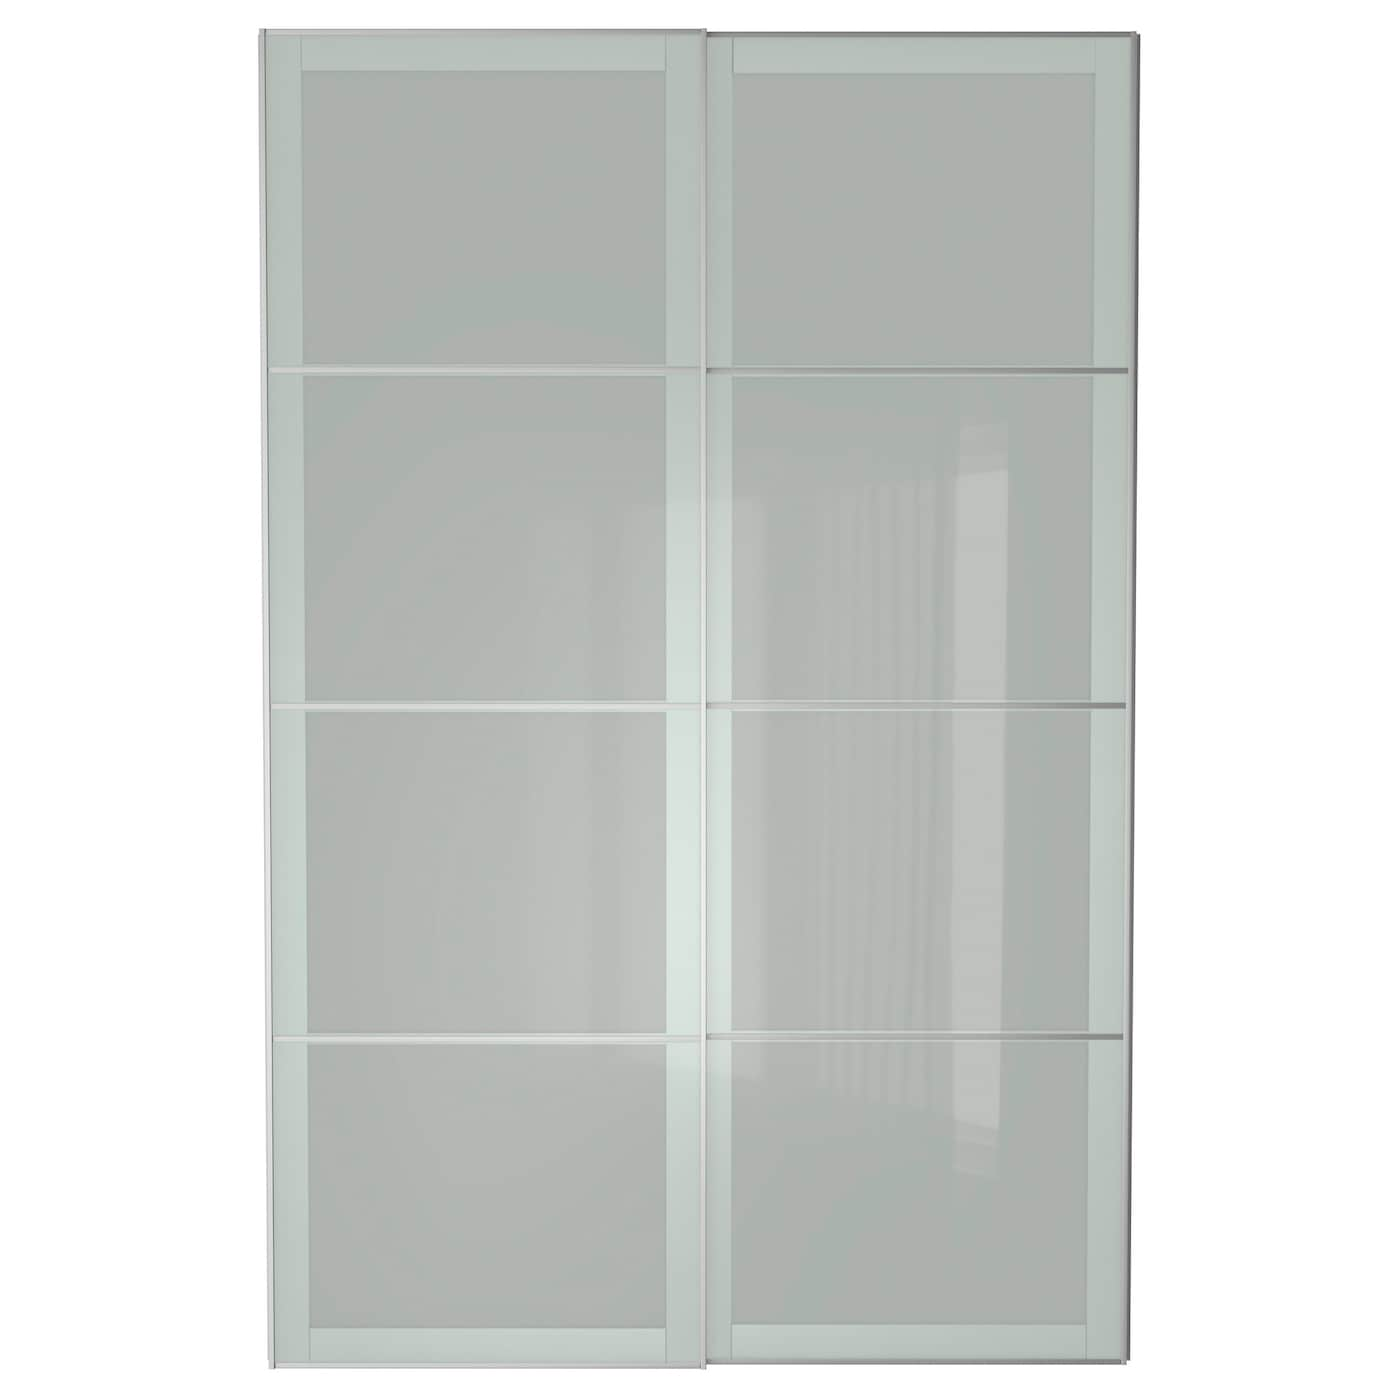 Sekken Pair Of Sliding Doors Frosted Glass 150 X 236 Cm Ikea